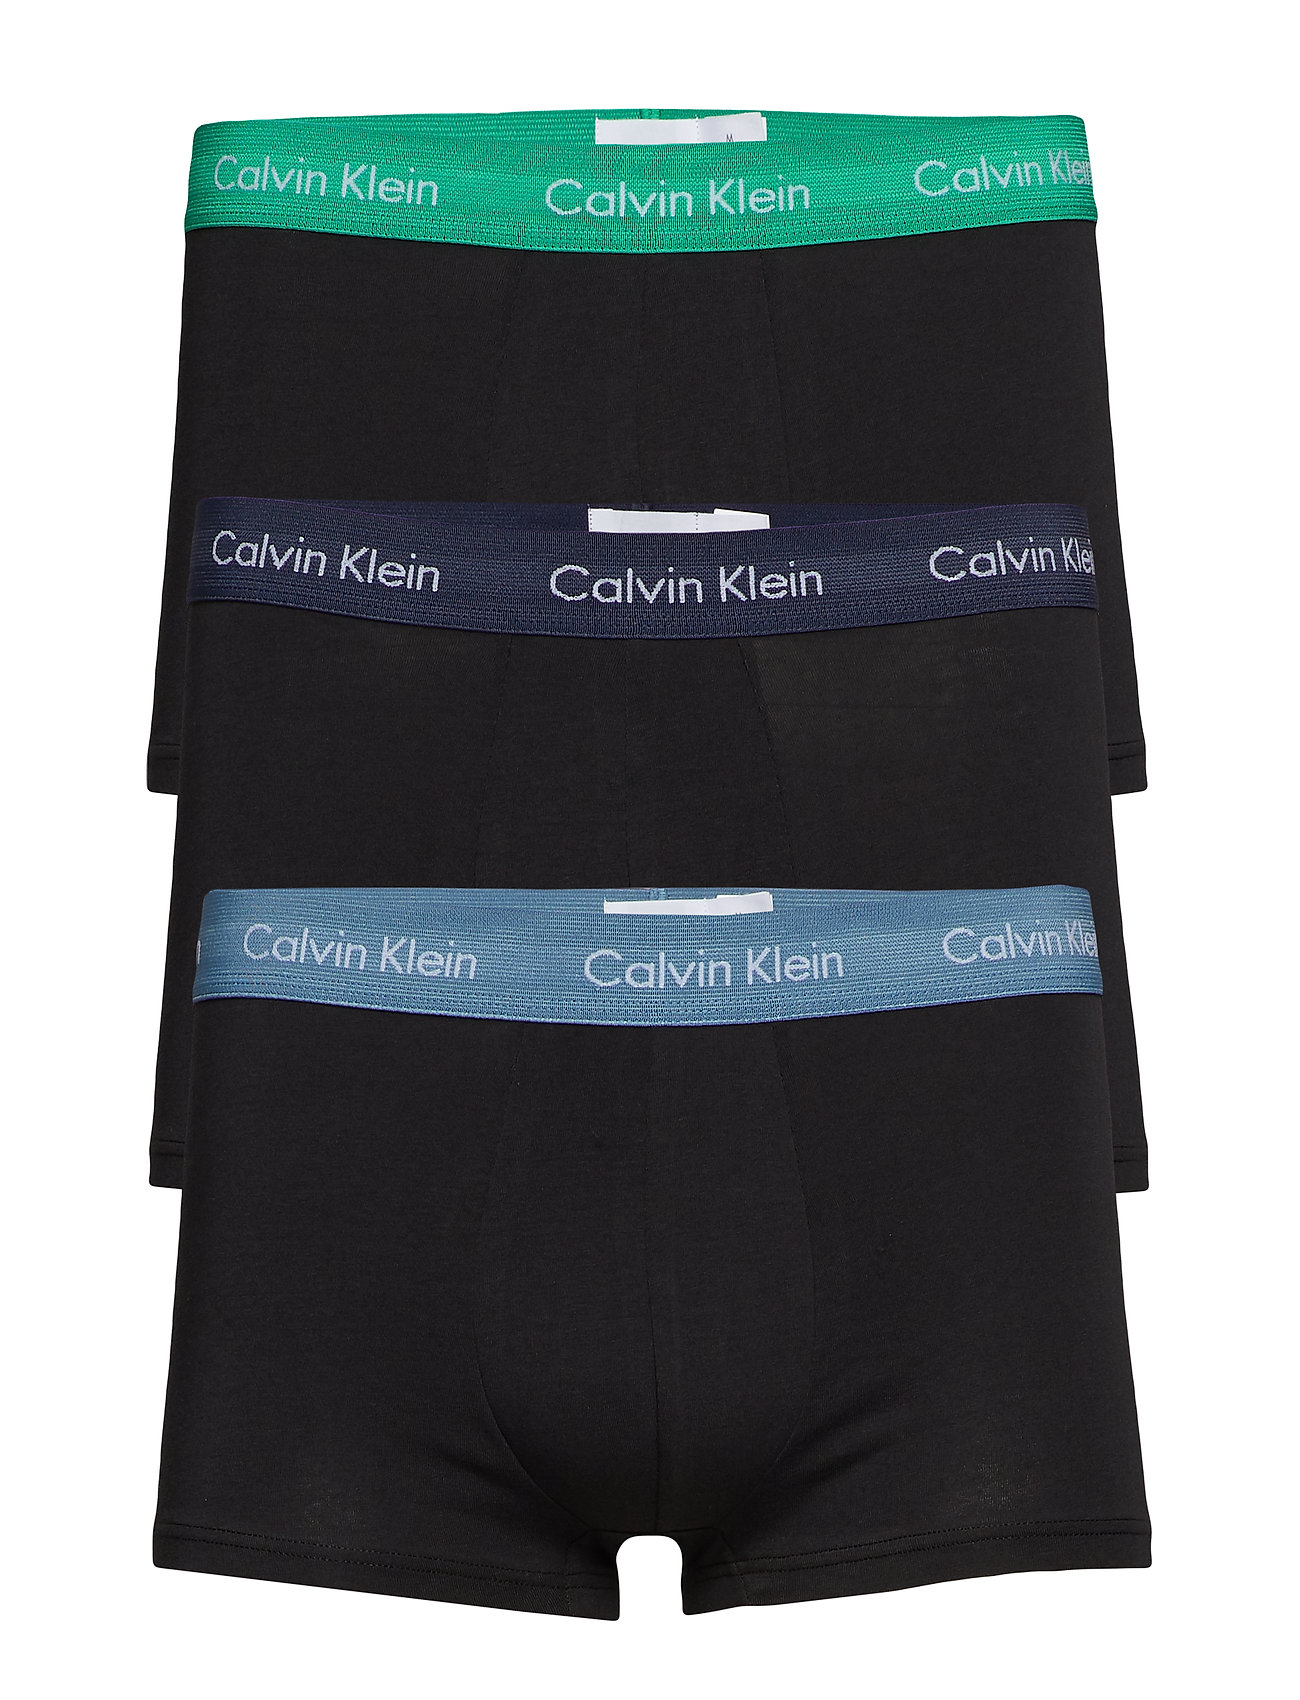 Calvin Klein 3P LOW RISE TRUNK 00